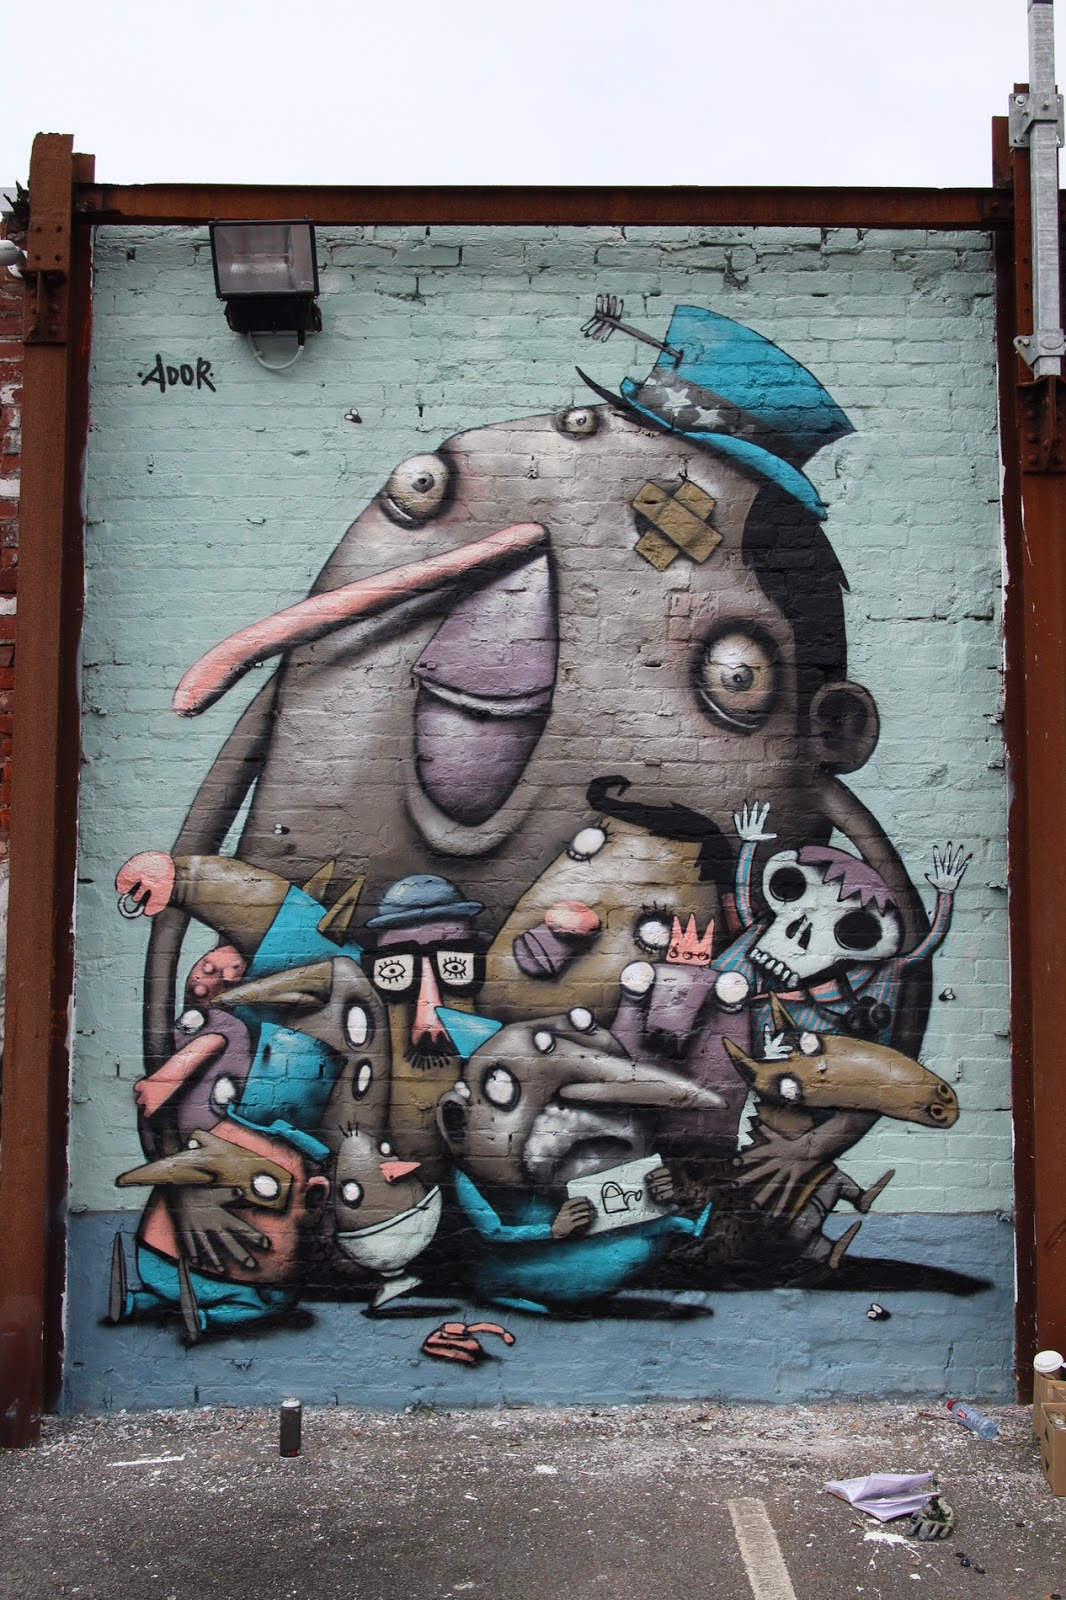 Fresh Ador paints new street pieces in Blackpool UK